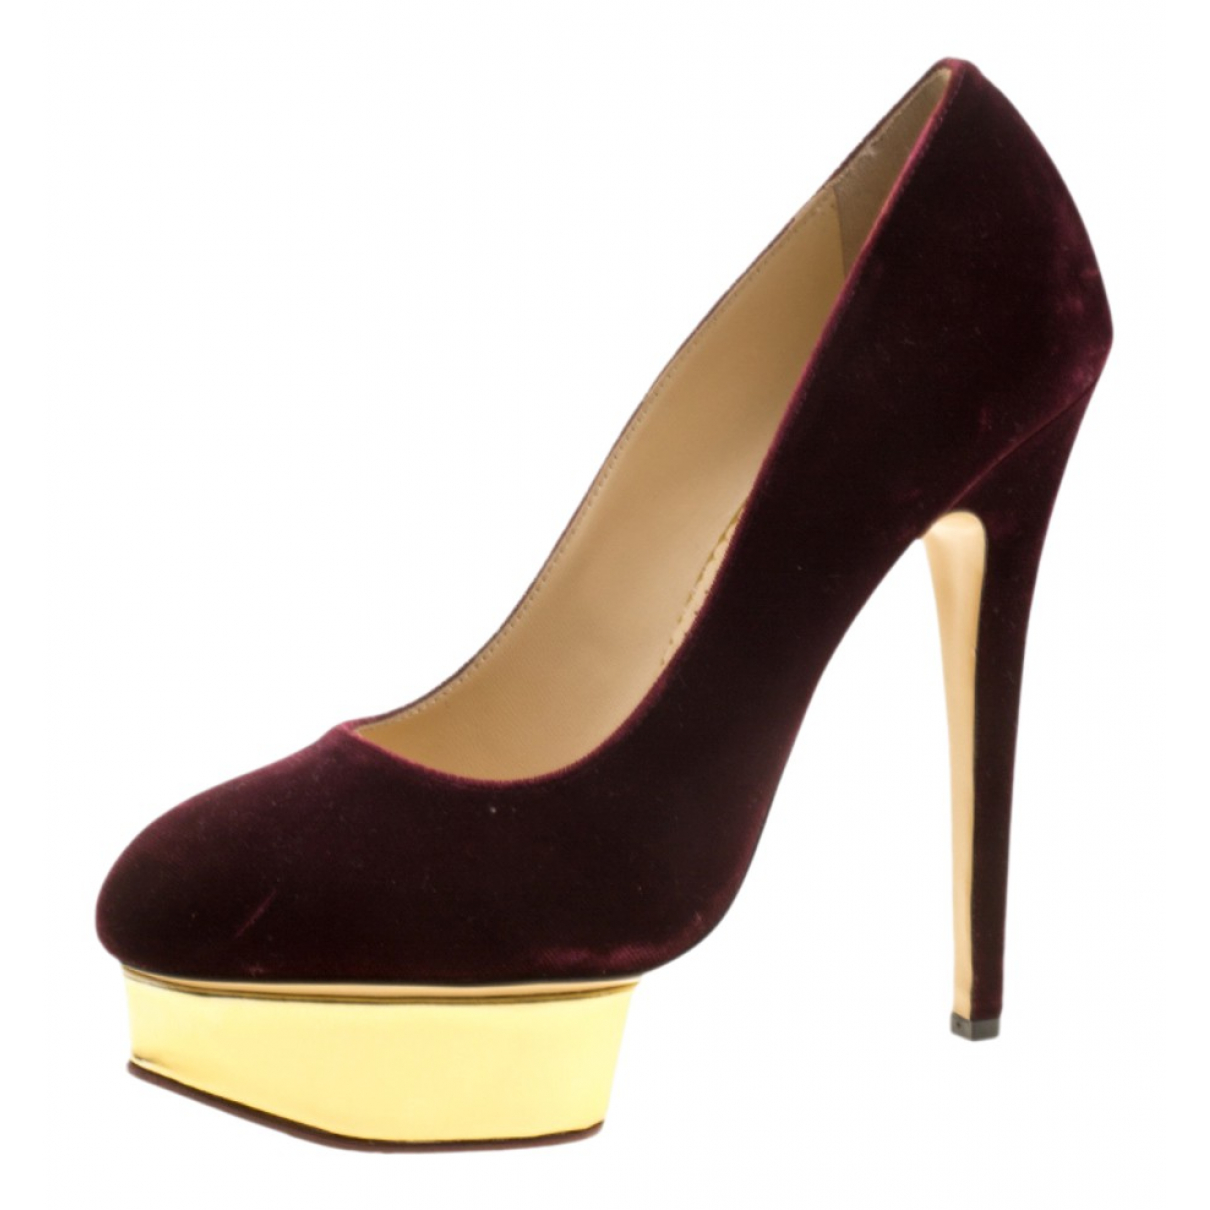 Charlotte Olympia Dolly Burgundy Leather Heels for Women 9.5 US